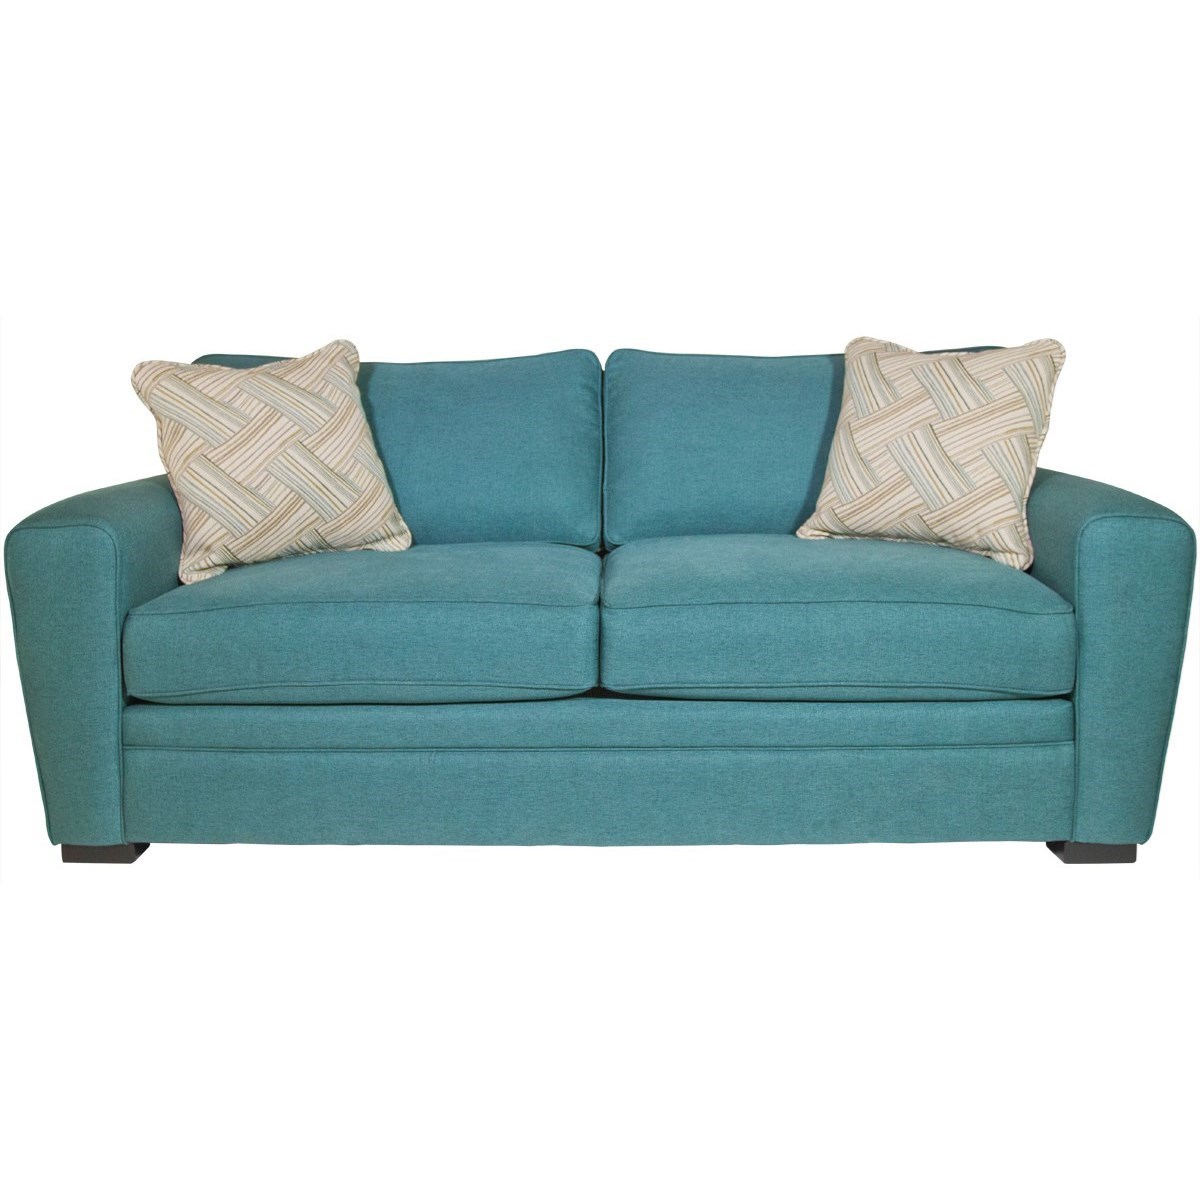 caribbean furniture. Jonathan Louis Choices - ArtemisCondo Sofa Caribbean Furniture I